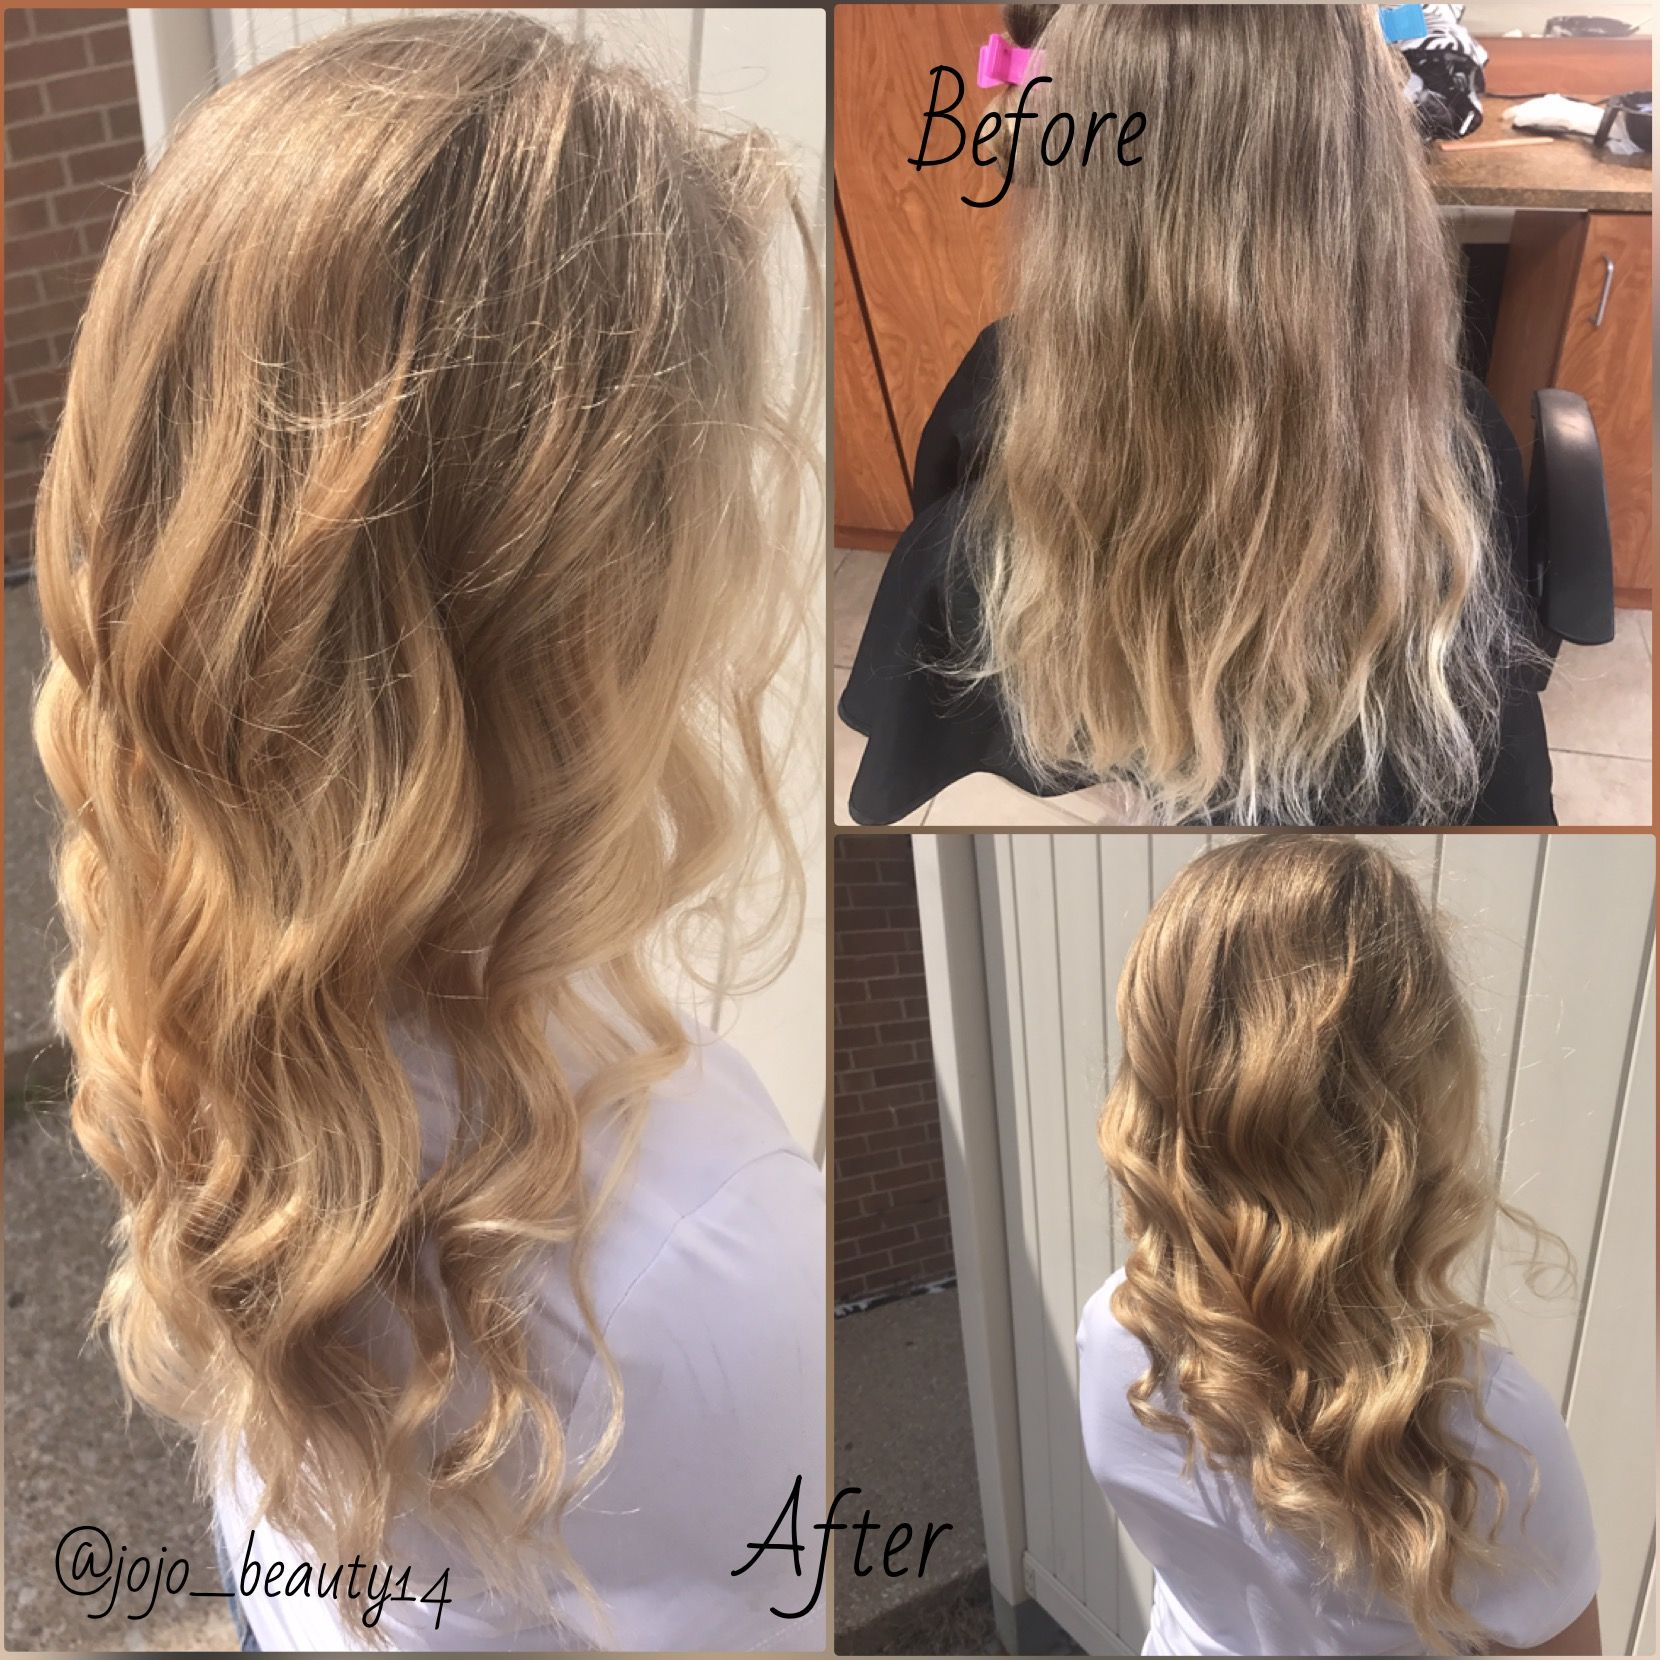 Color Correction From Splotchy Blondes To An All Over Natural Blonde